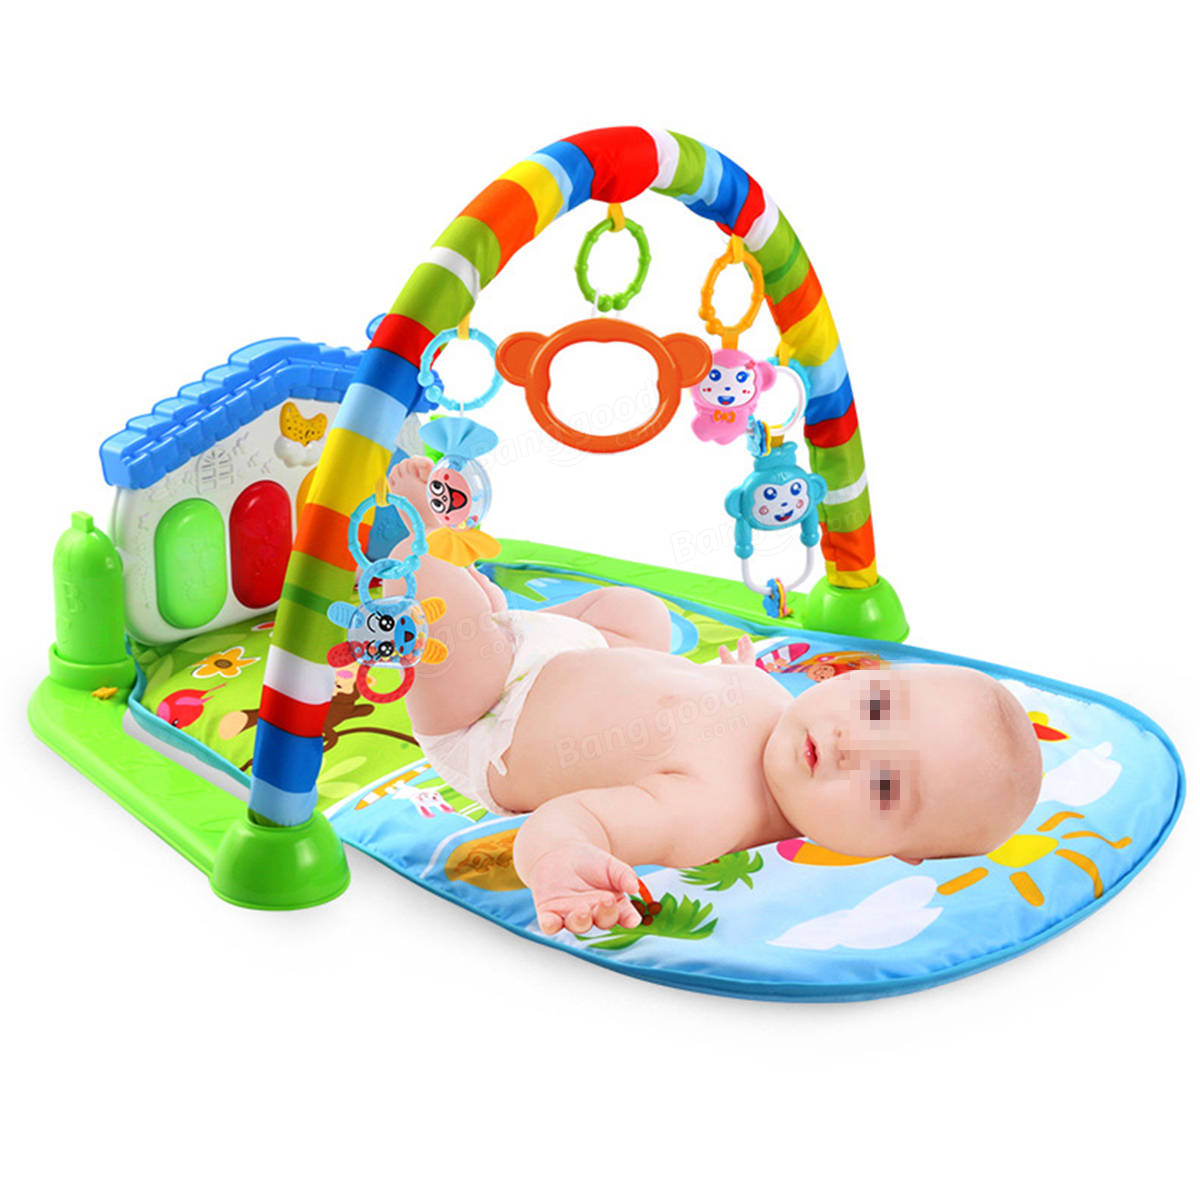 3 in 1 Baby Infant Gym Soft Playmat & Fitness Music Lights Fun Piano Carpet Gift